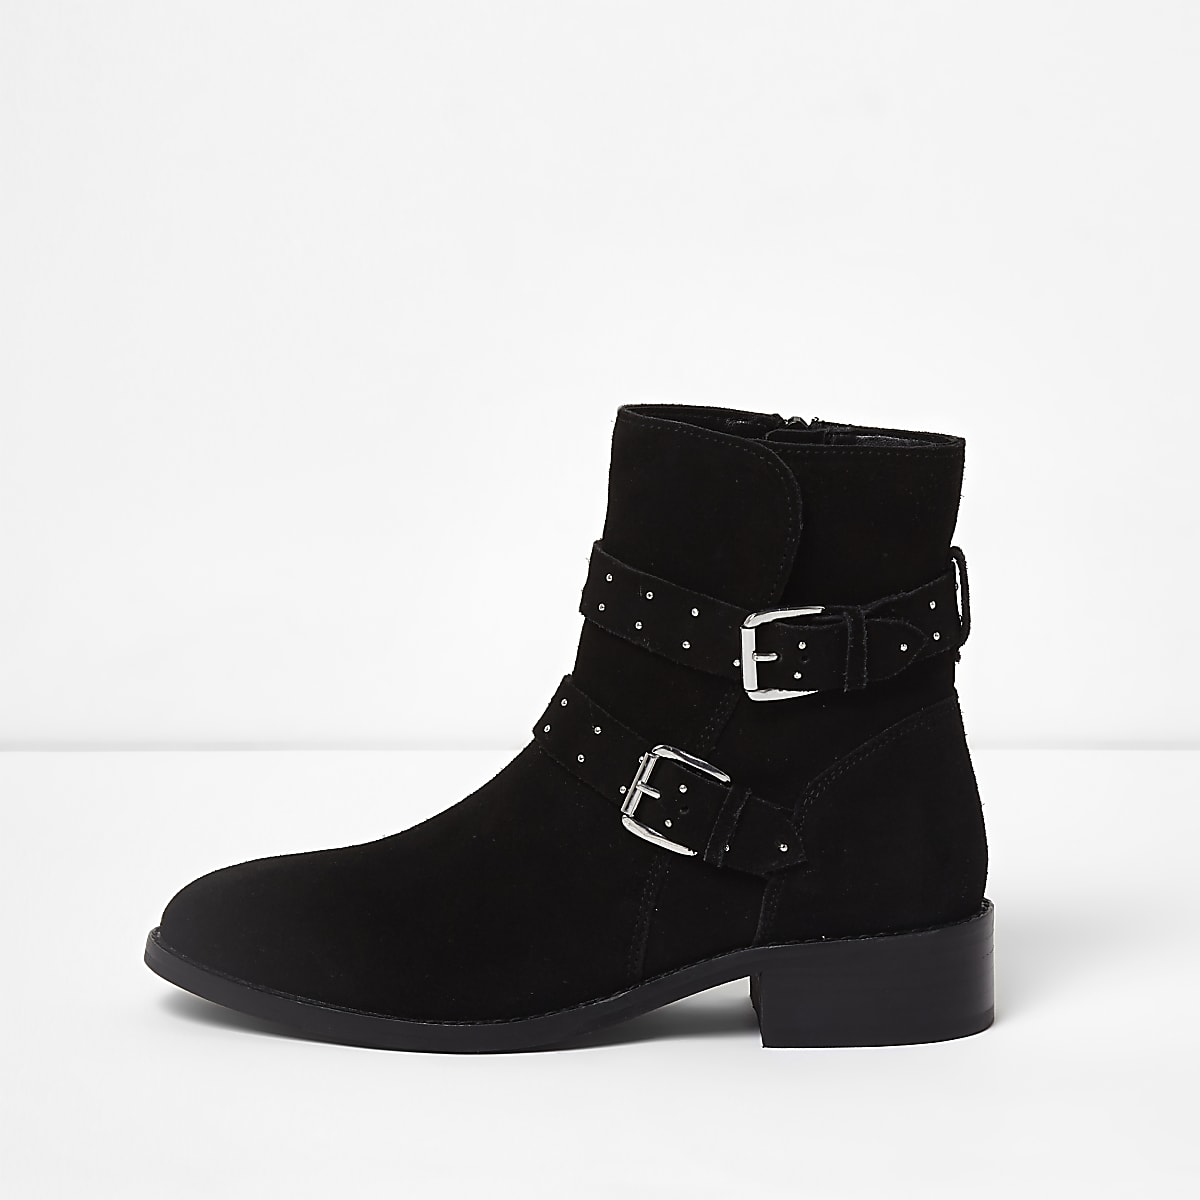 13054e781 Black suede studded buckle ankle boots - Boots - Shoes & Boots - women